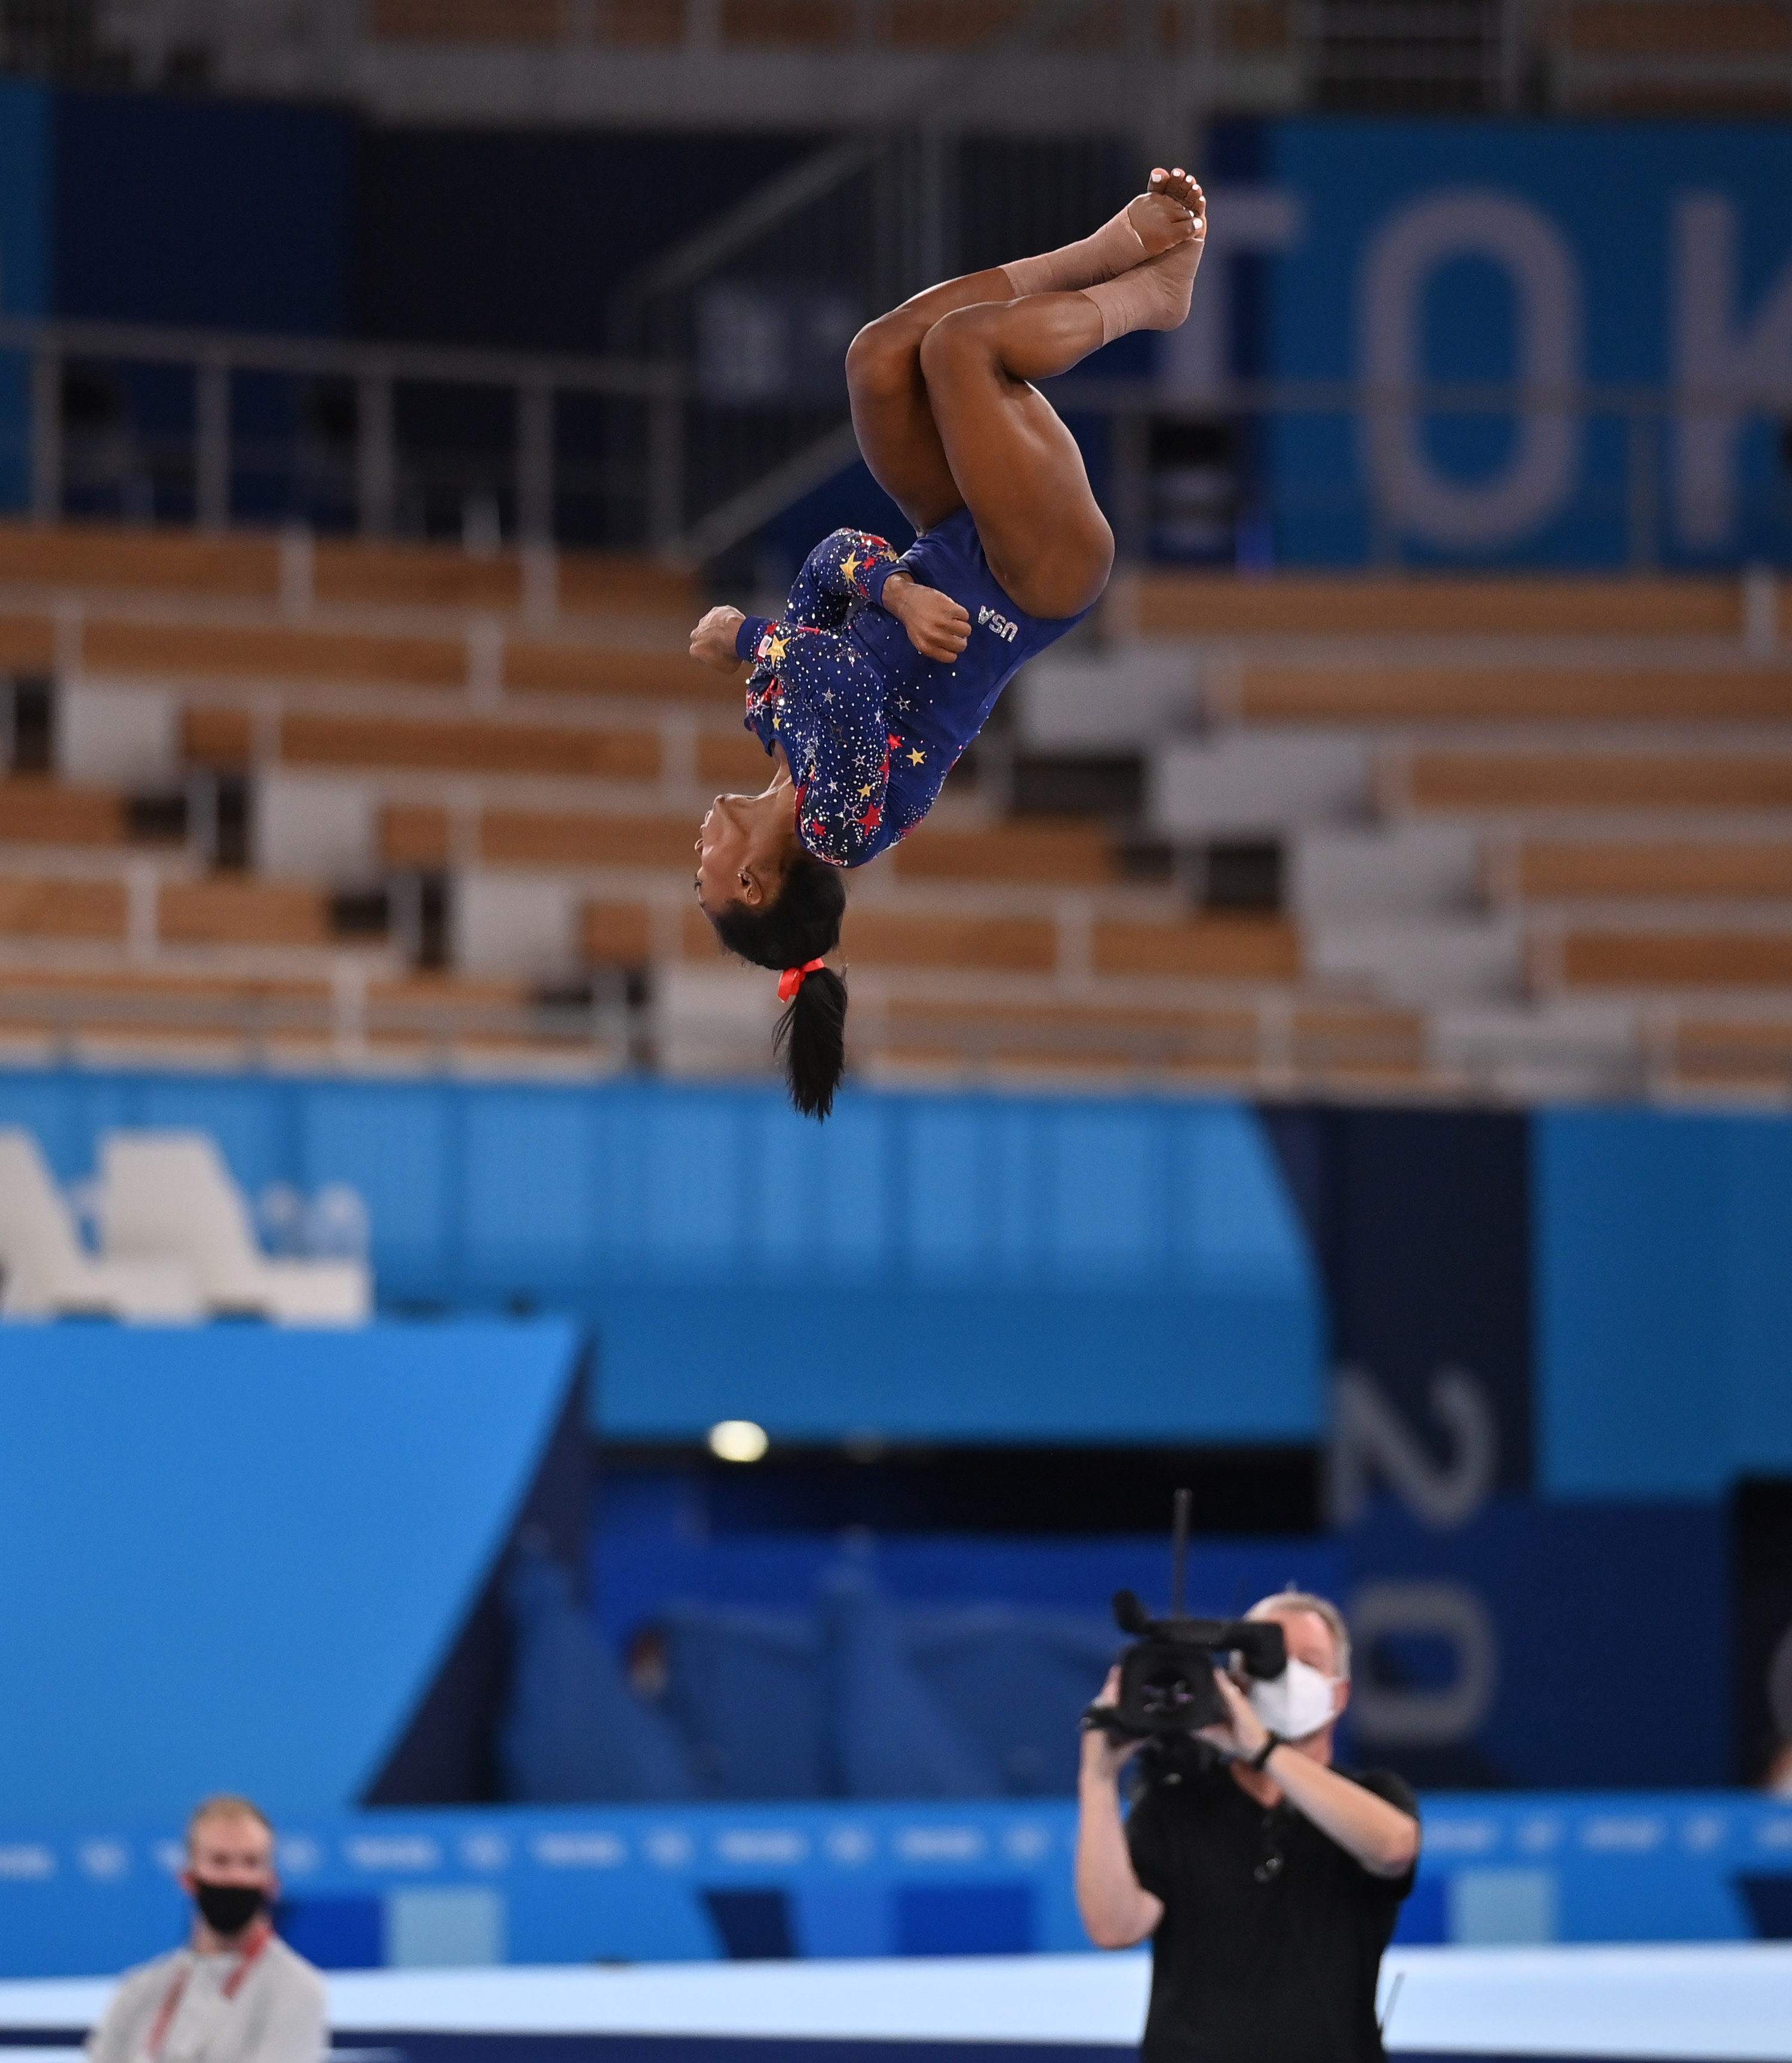 Simone is airborne and upside down